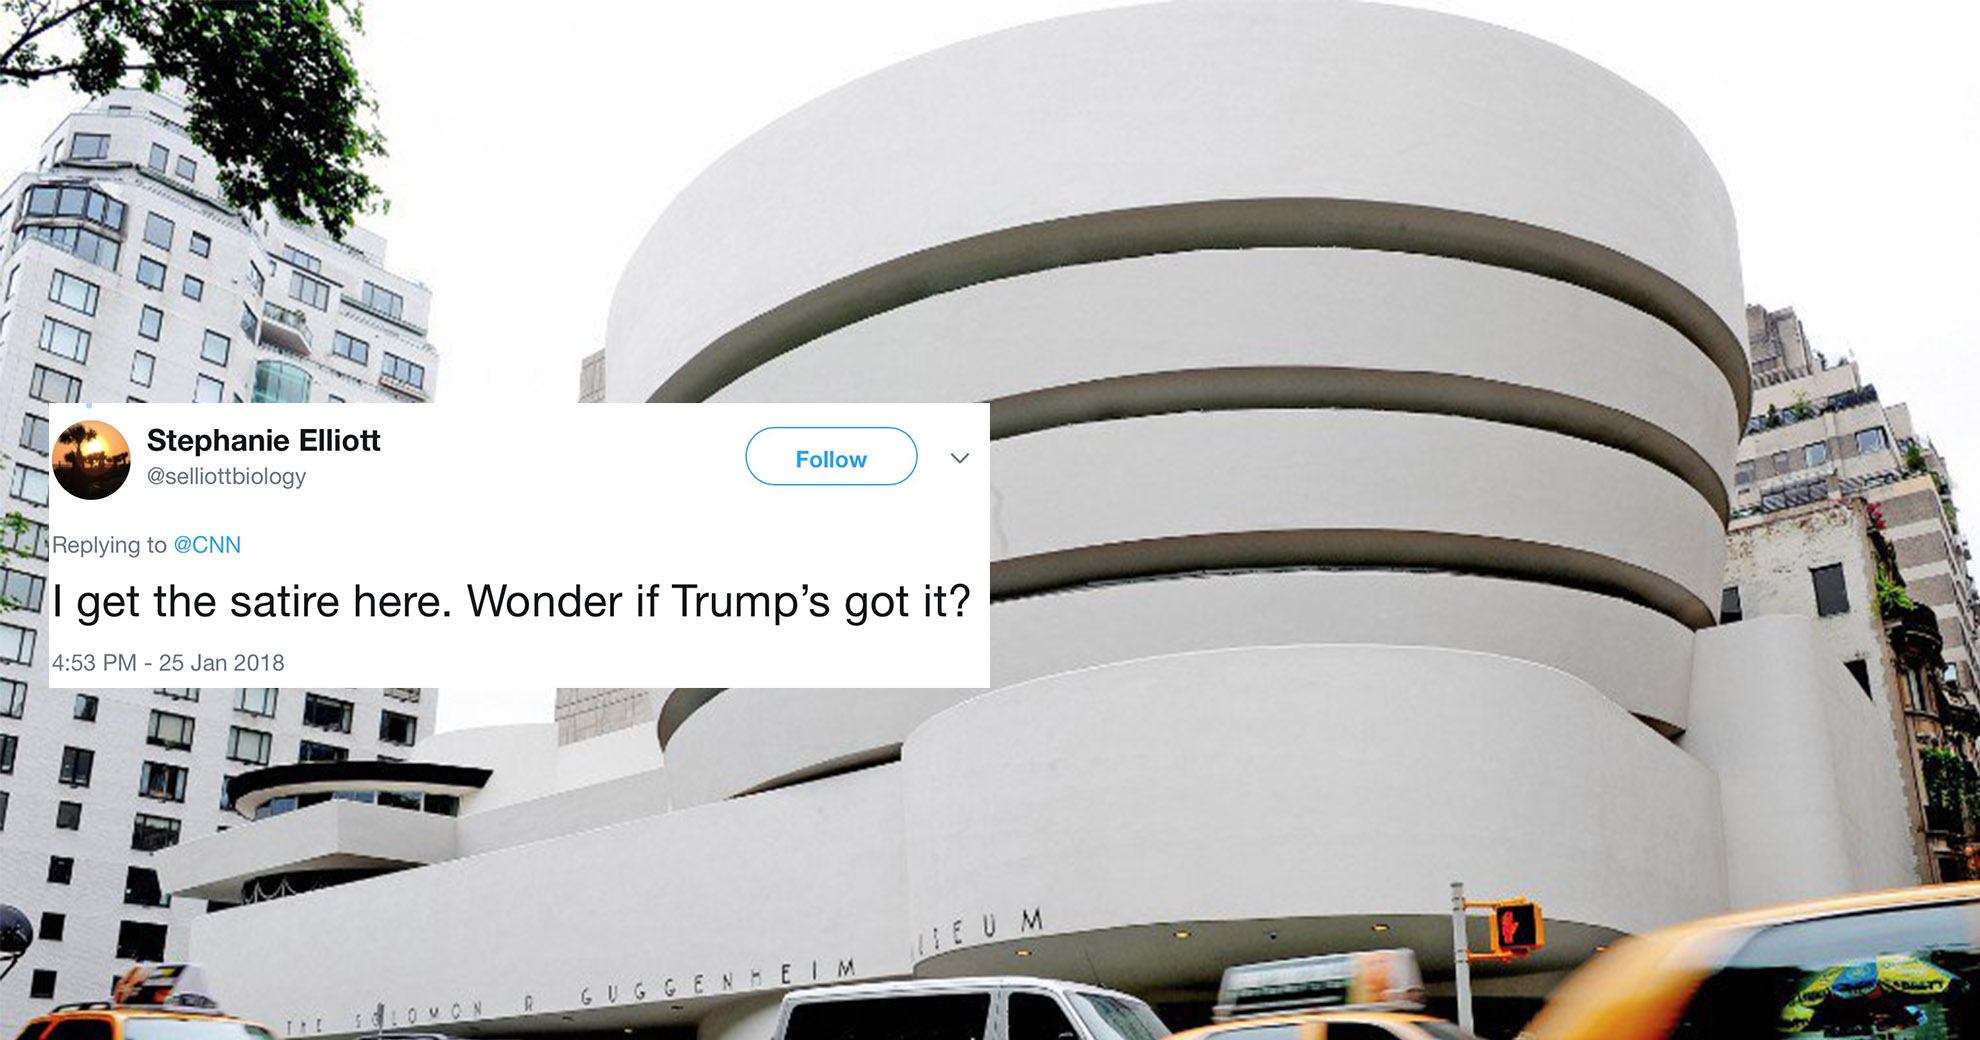 The Guggenheim Trolled President Trump Last Year, And We Learned About It Today